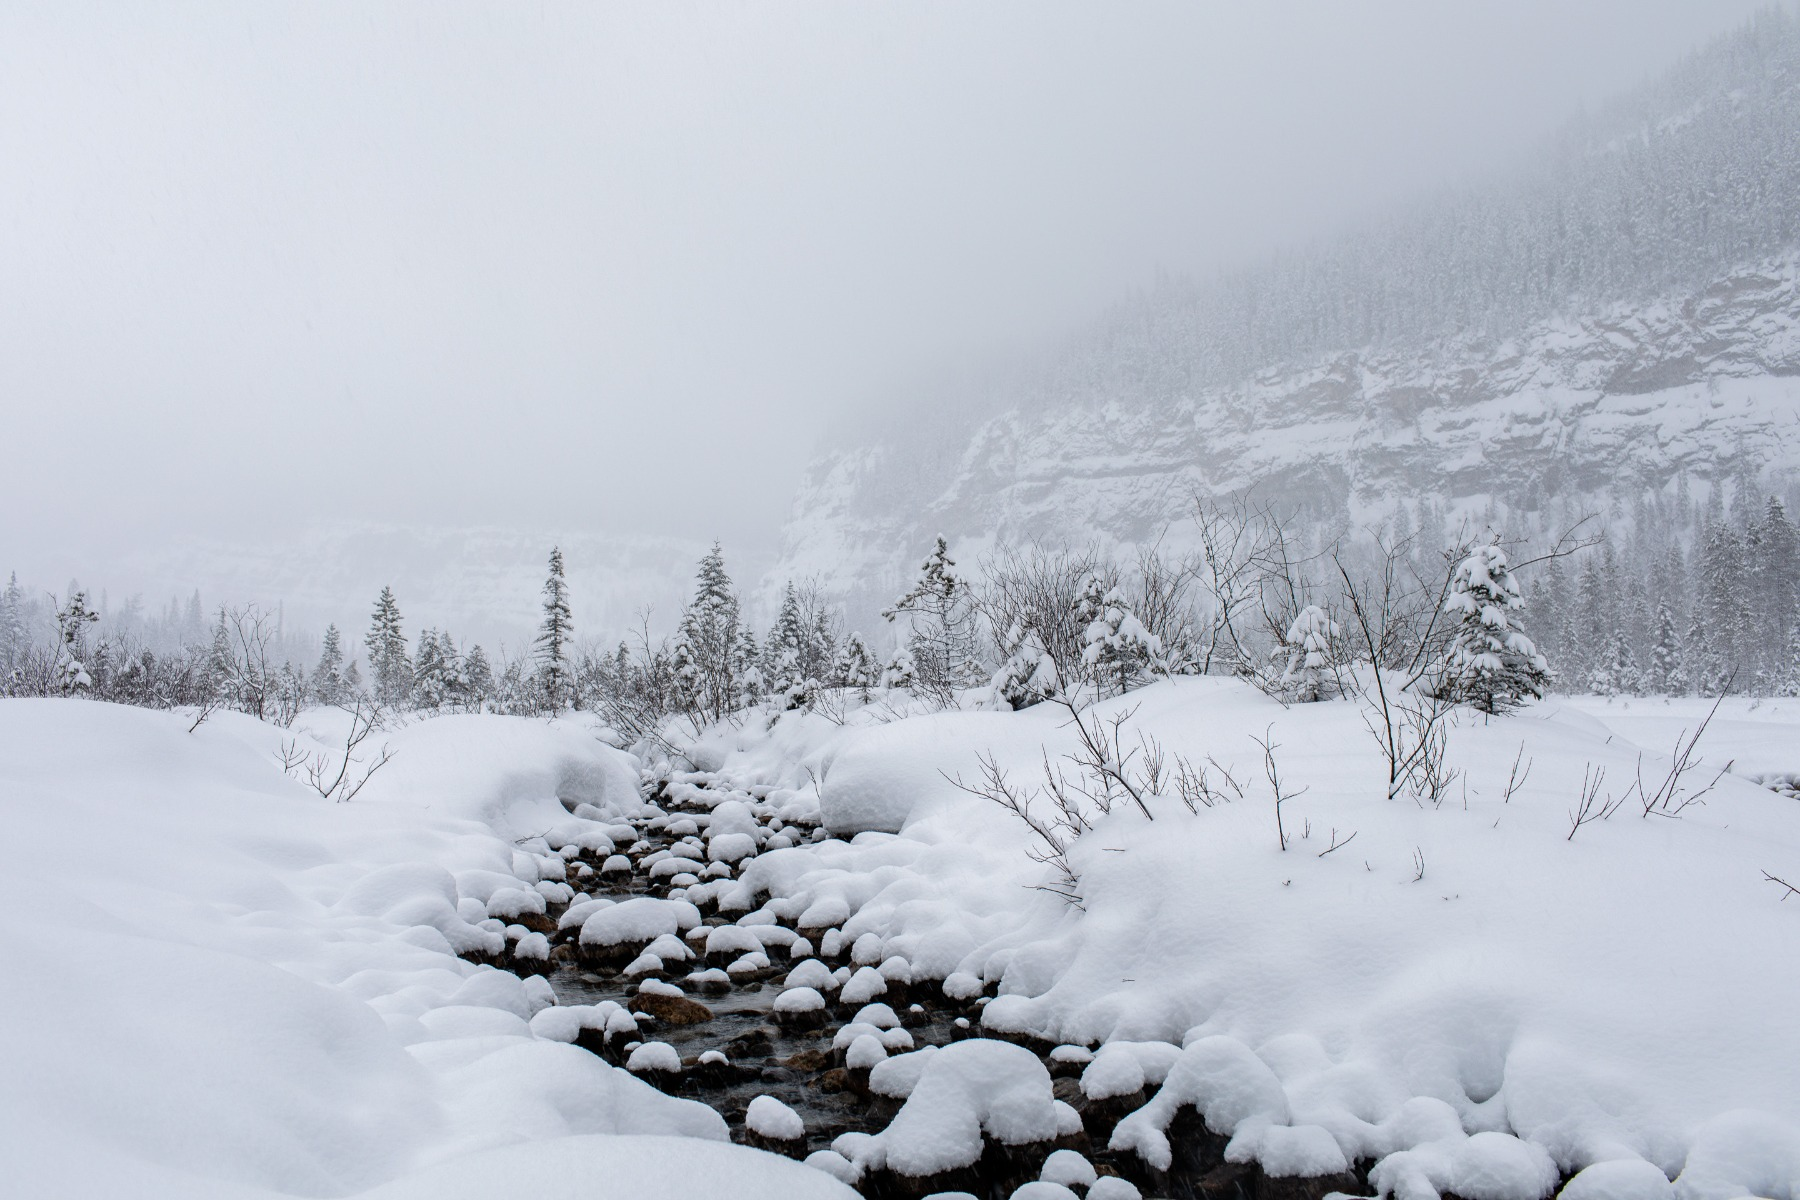 Snow is piled high on rocks and the surrounding ground of a stream with a thick fog obscuring the mountain view.